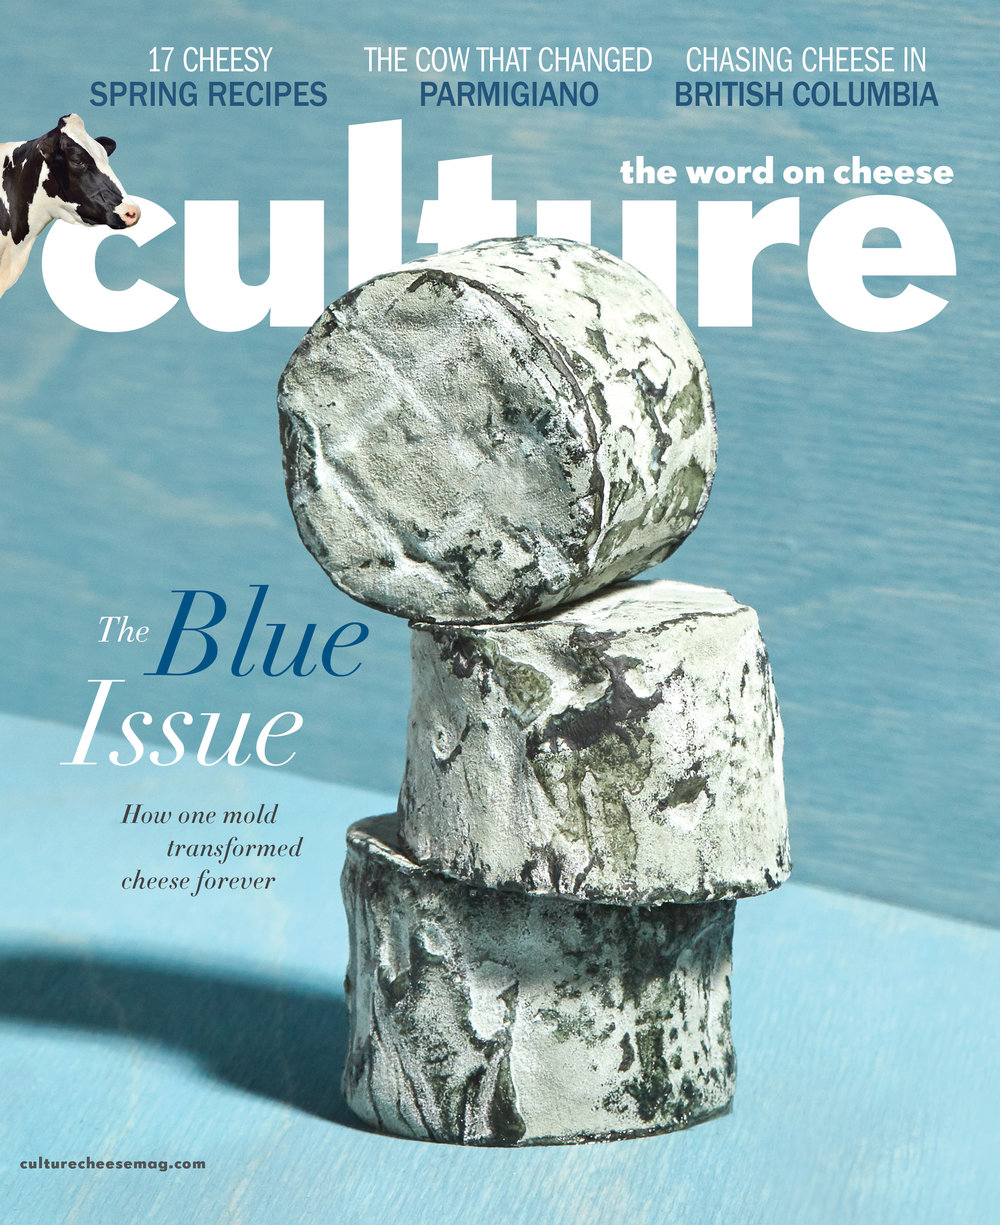 CULTURE Spring 18 Cover NO BARCODE.jpeg